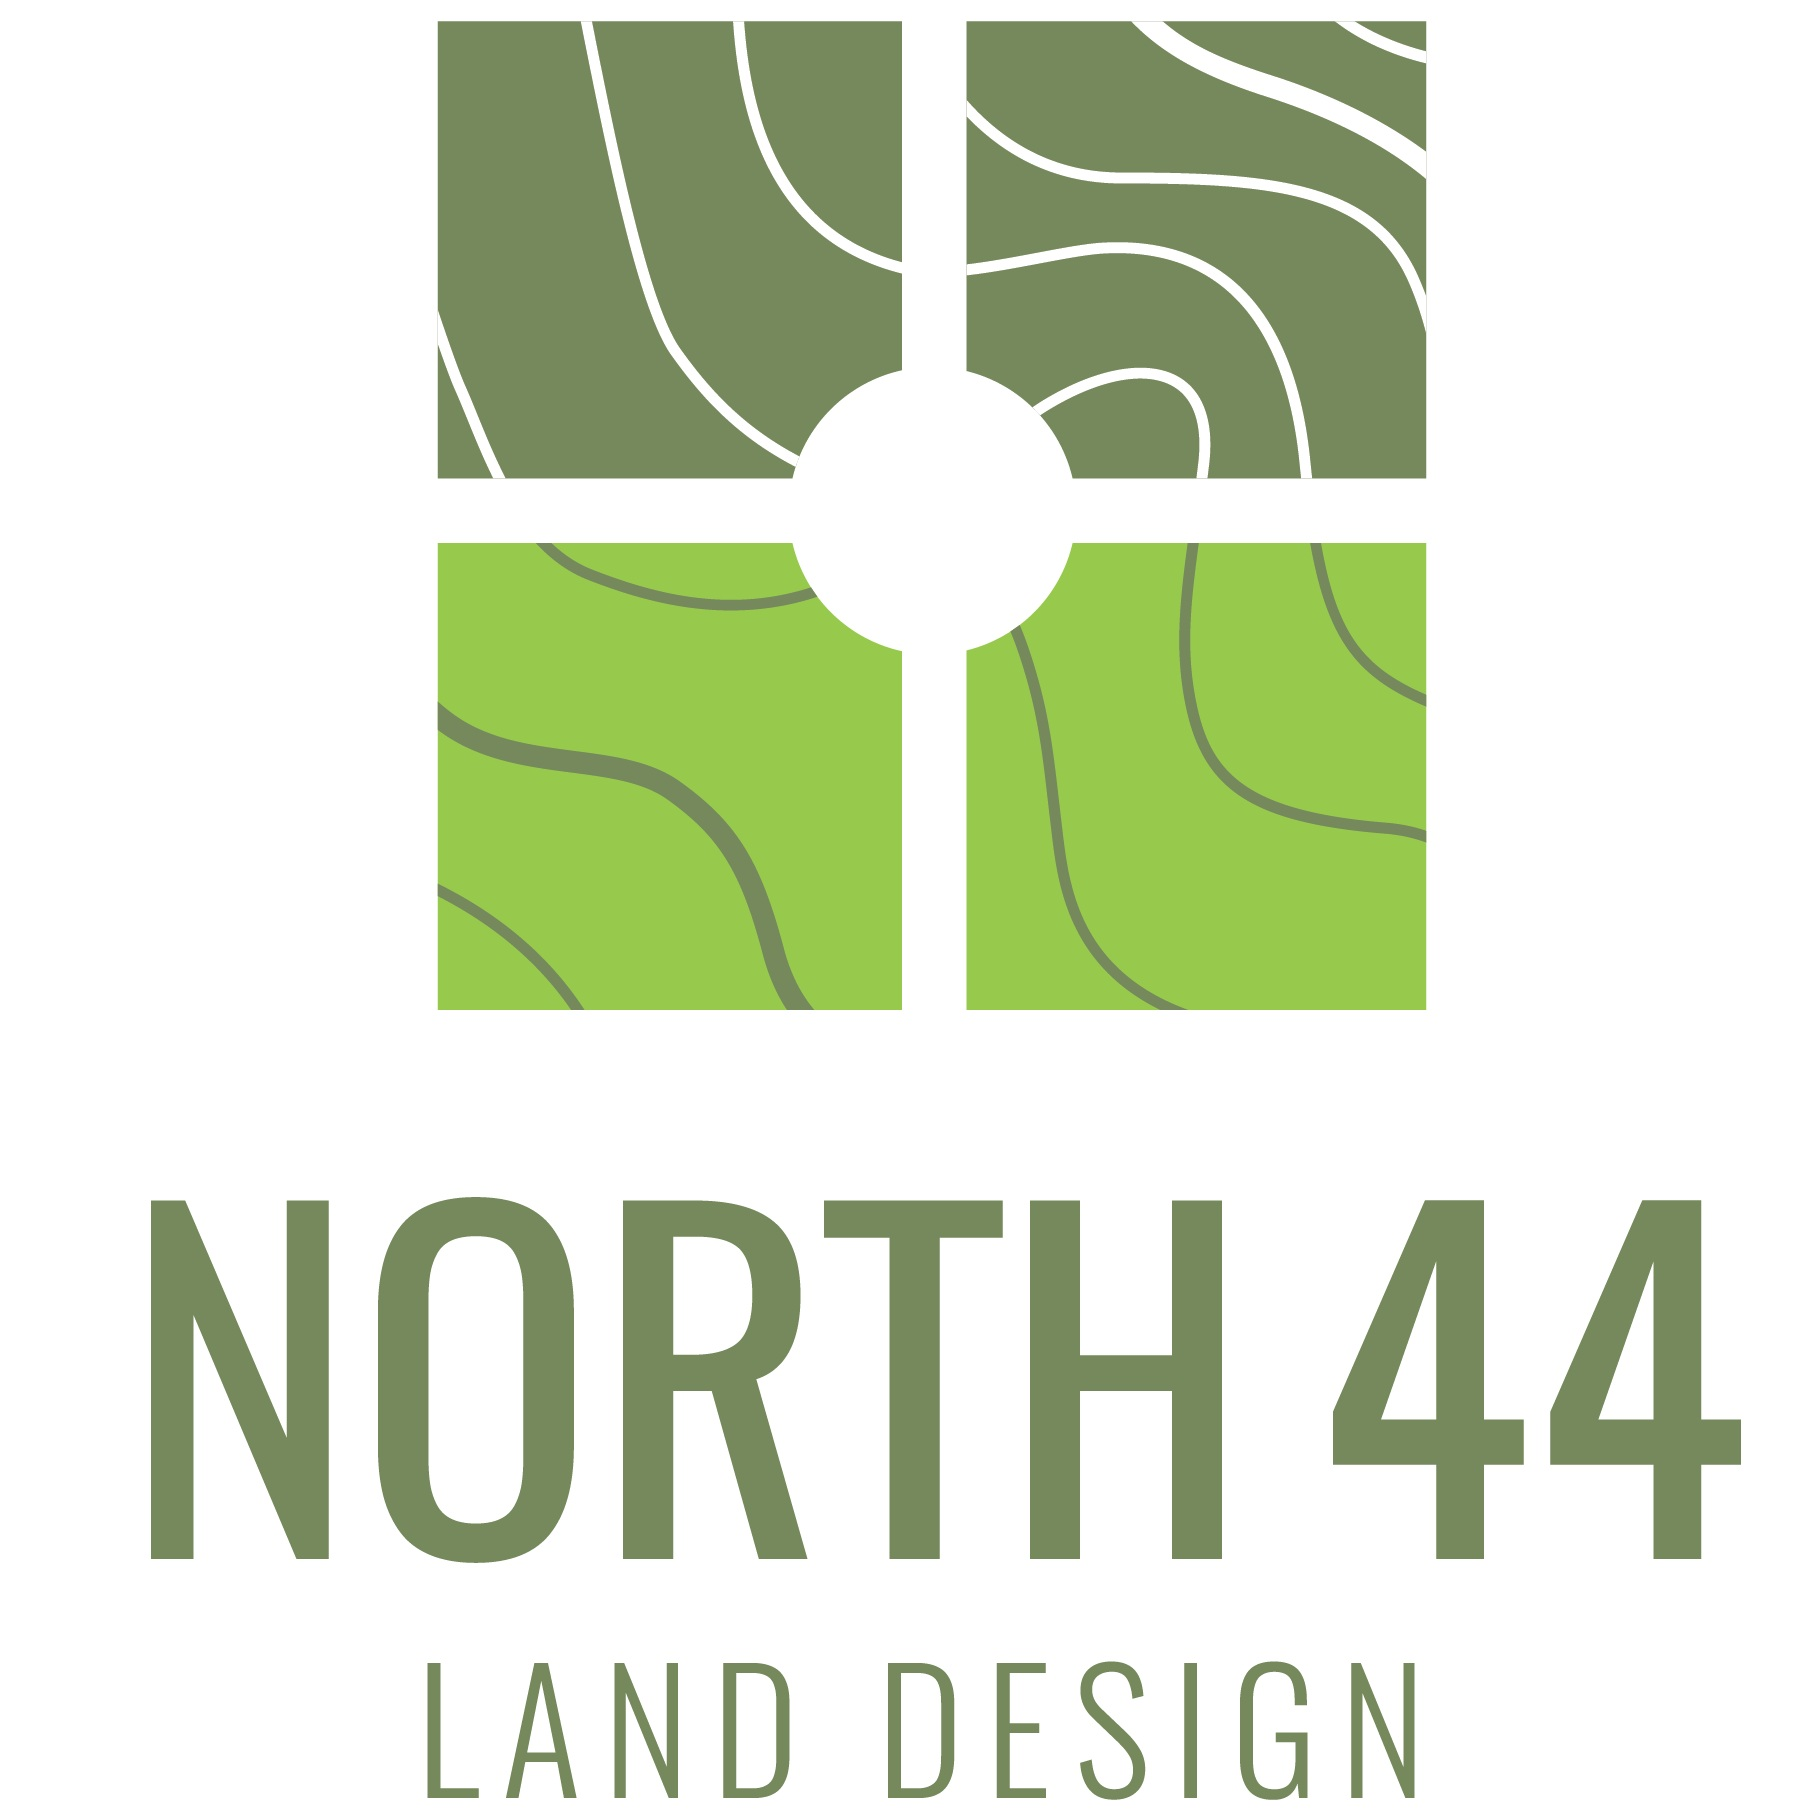 North44-Logo-Transparent-01.png